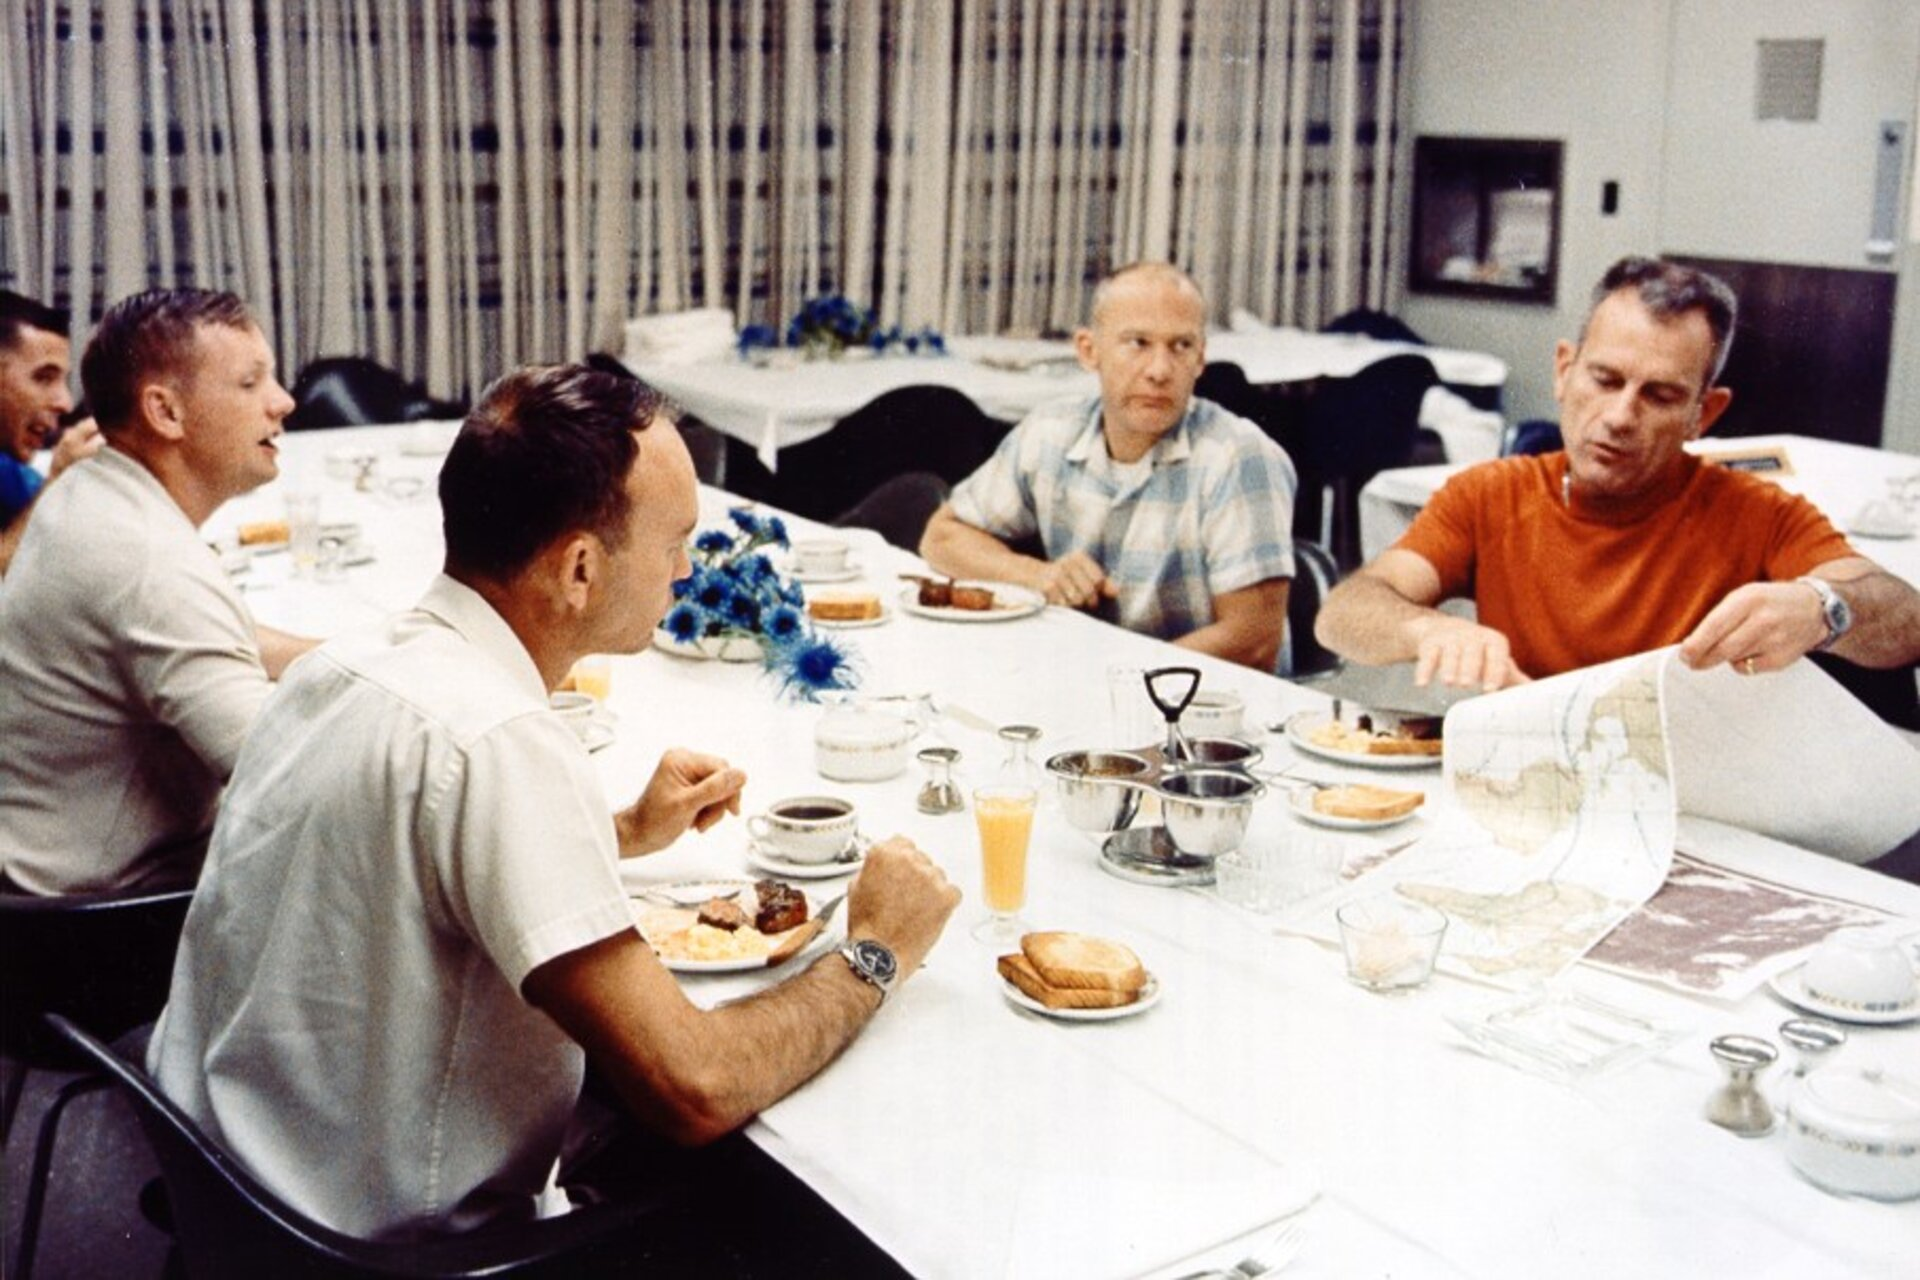 The crew have breakfast on launch day